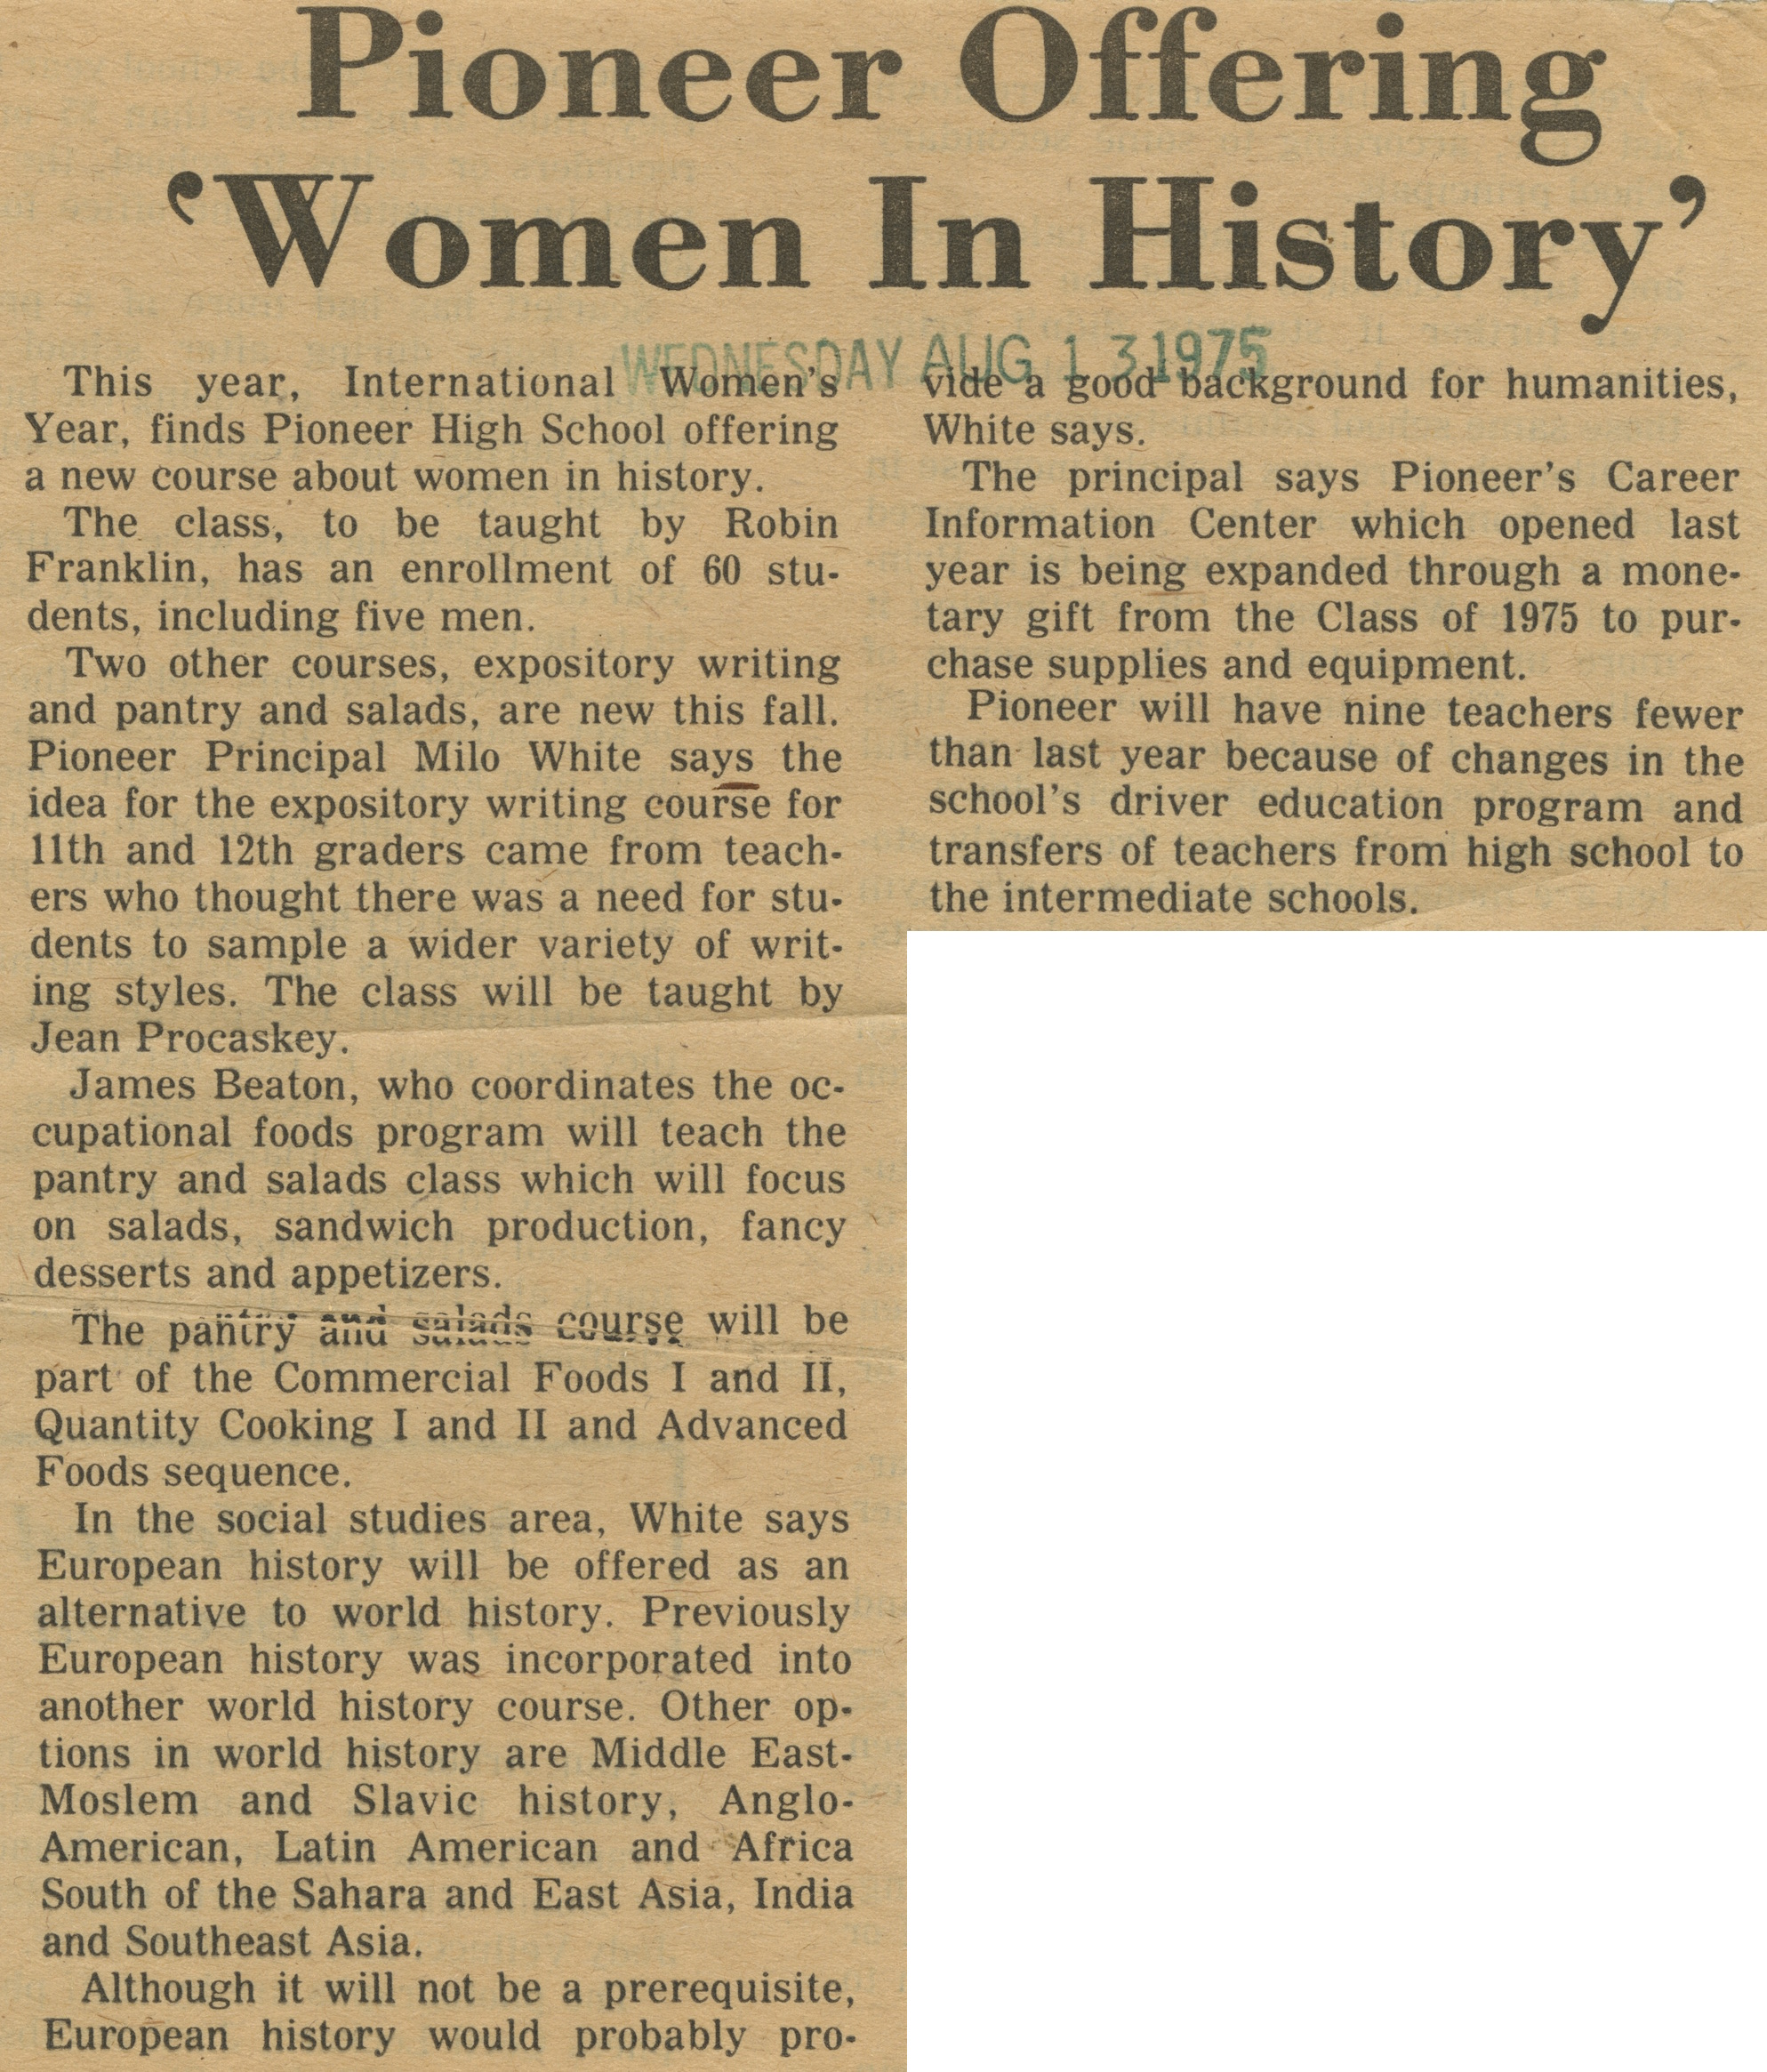 Pioneer Offering 'Women In History' image